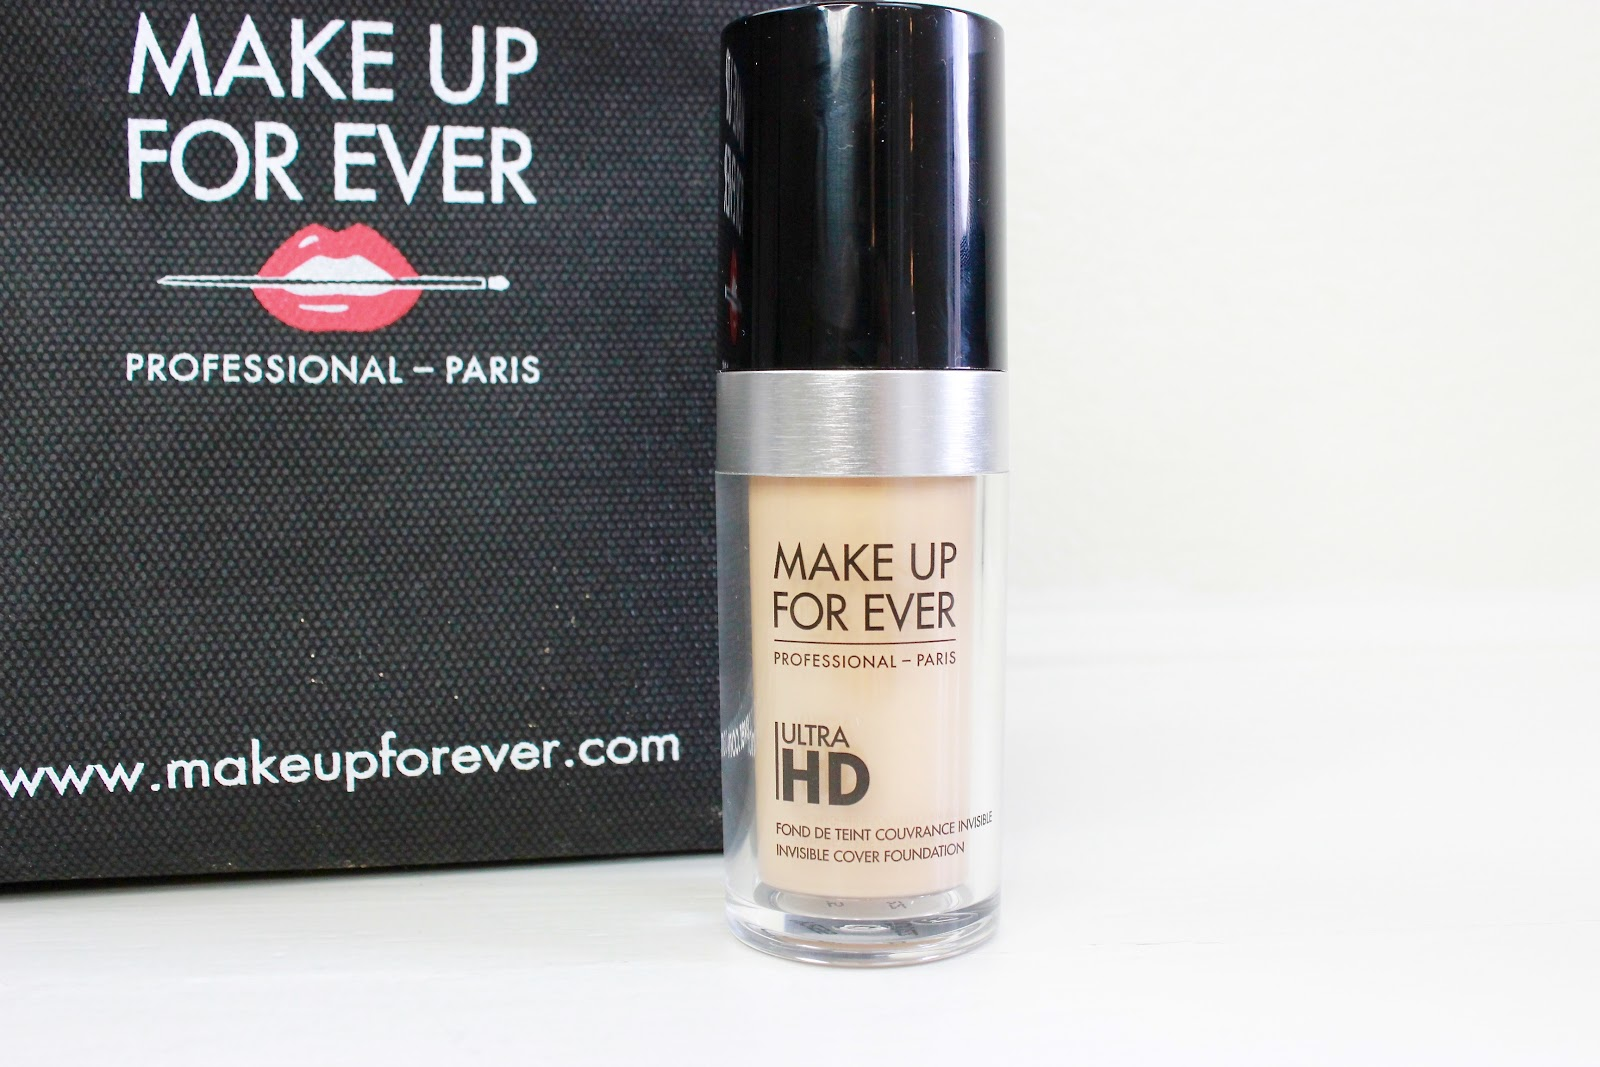 Make Up For Ever Ultra HD Foundation - Review and Swatches